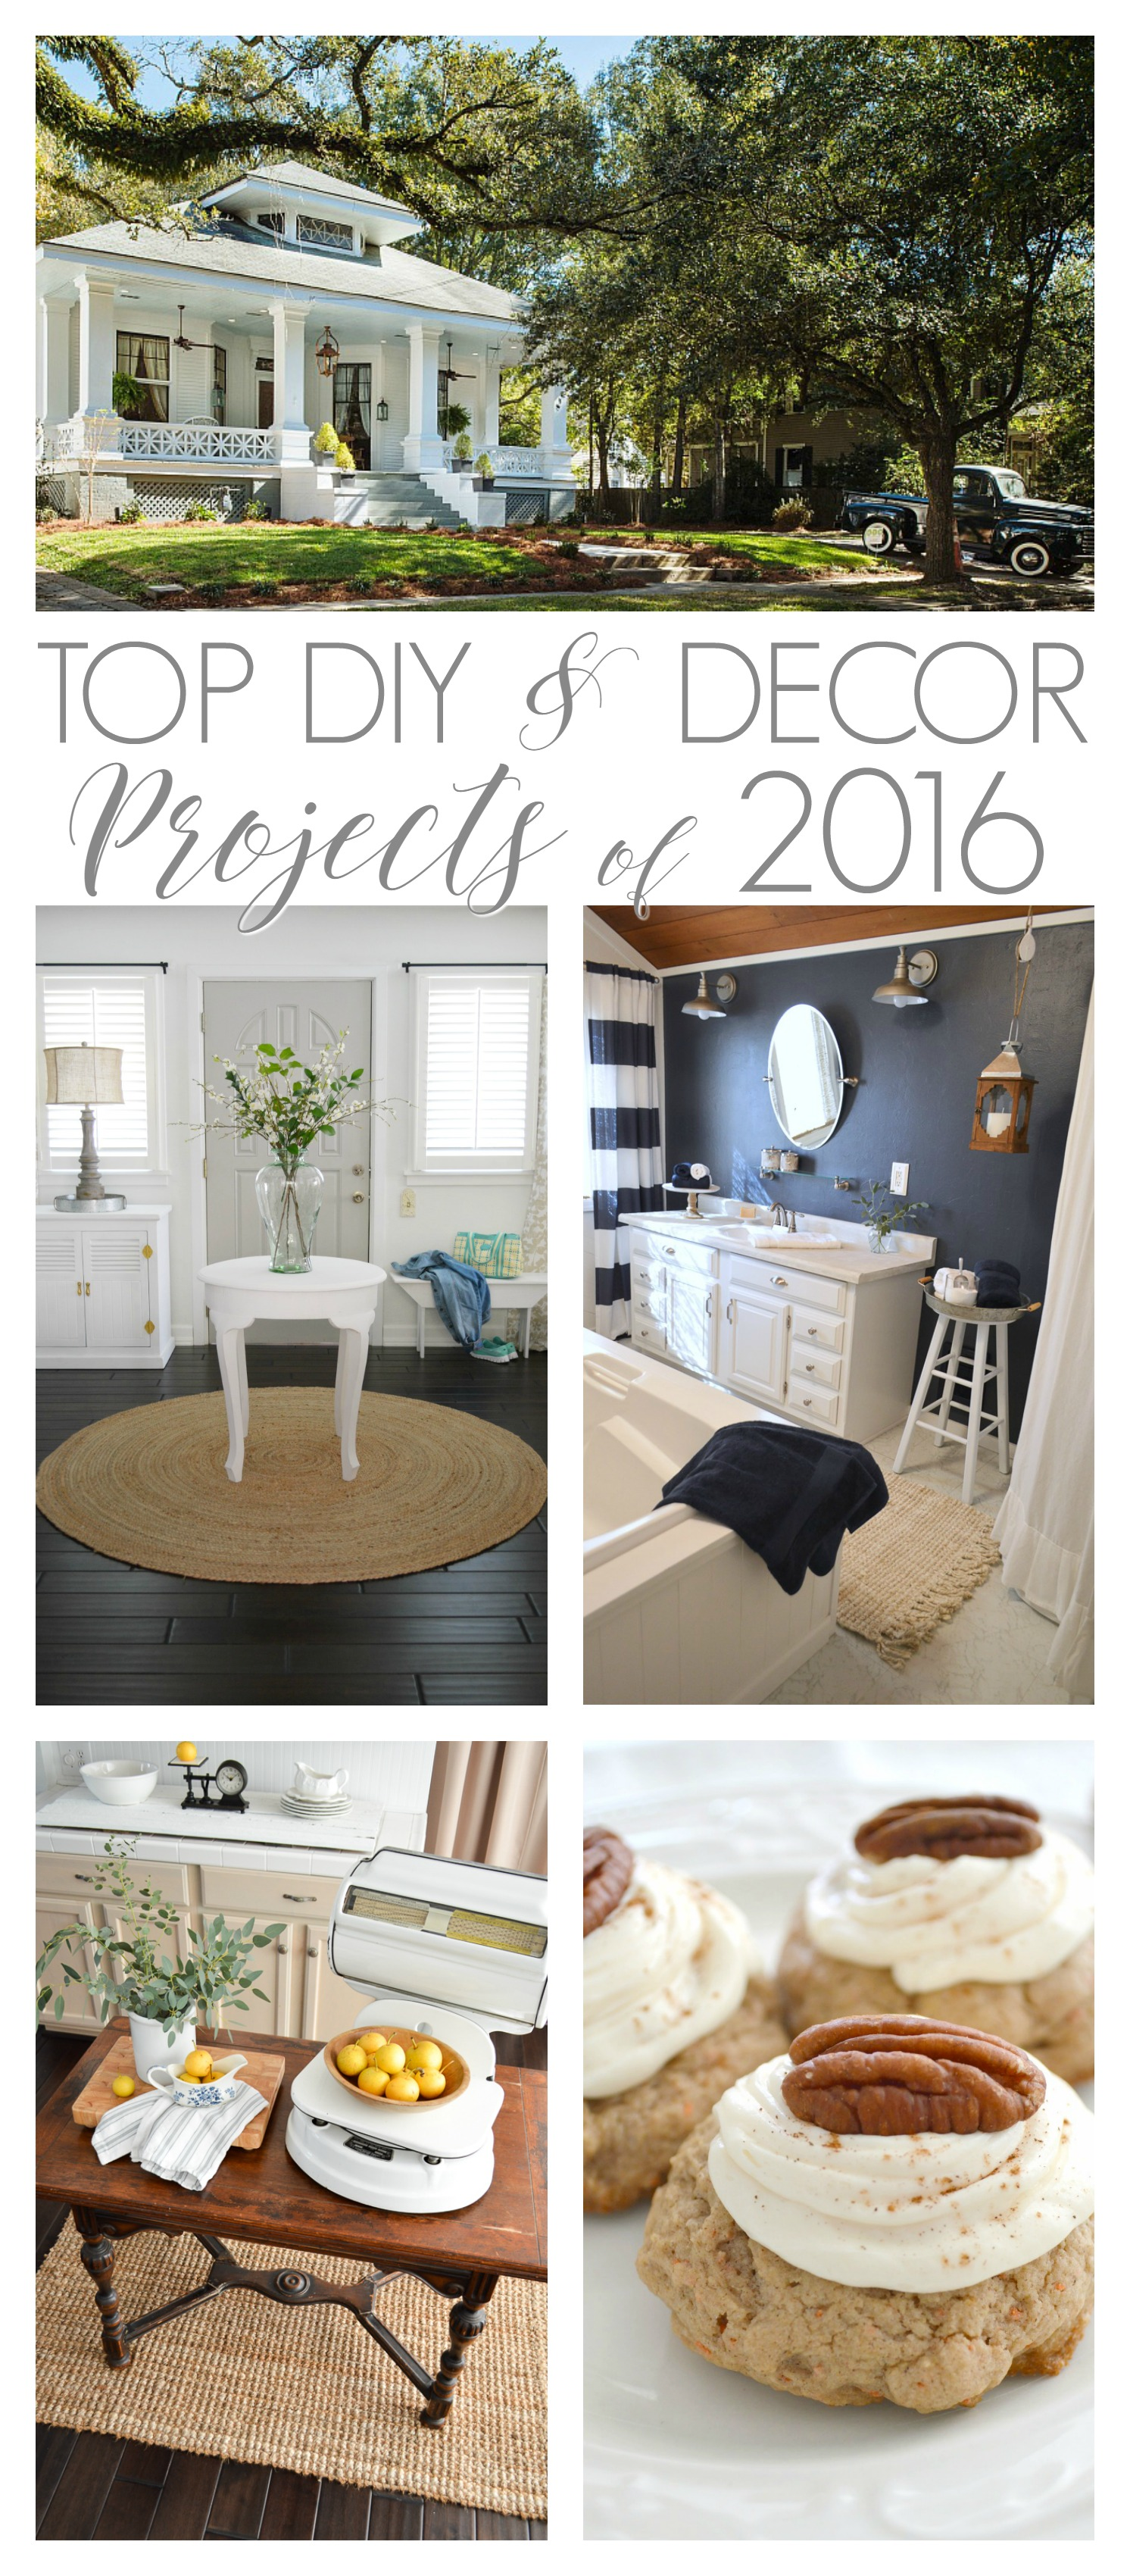 Top DIY & Decor Projects of 2016